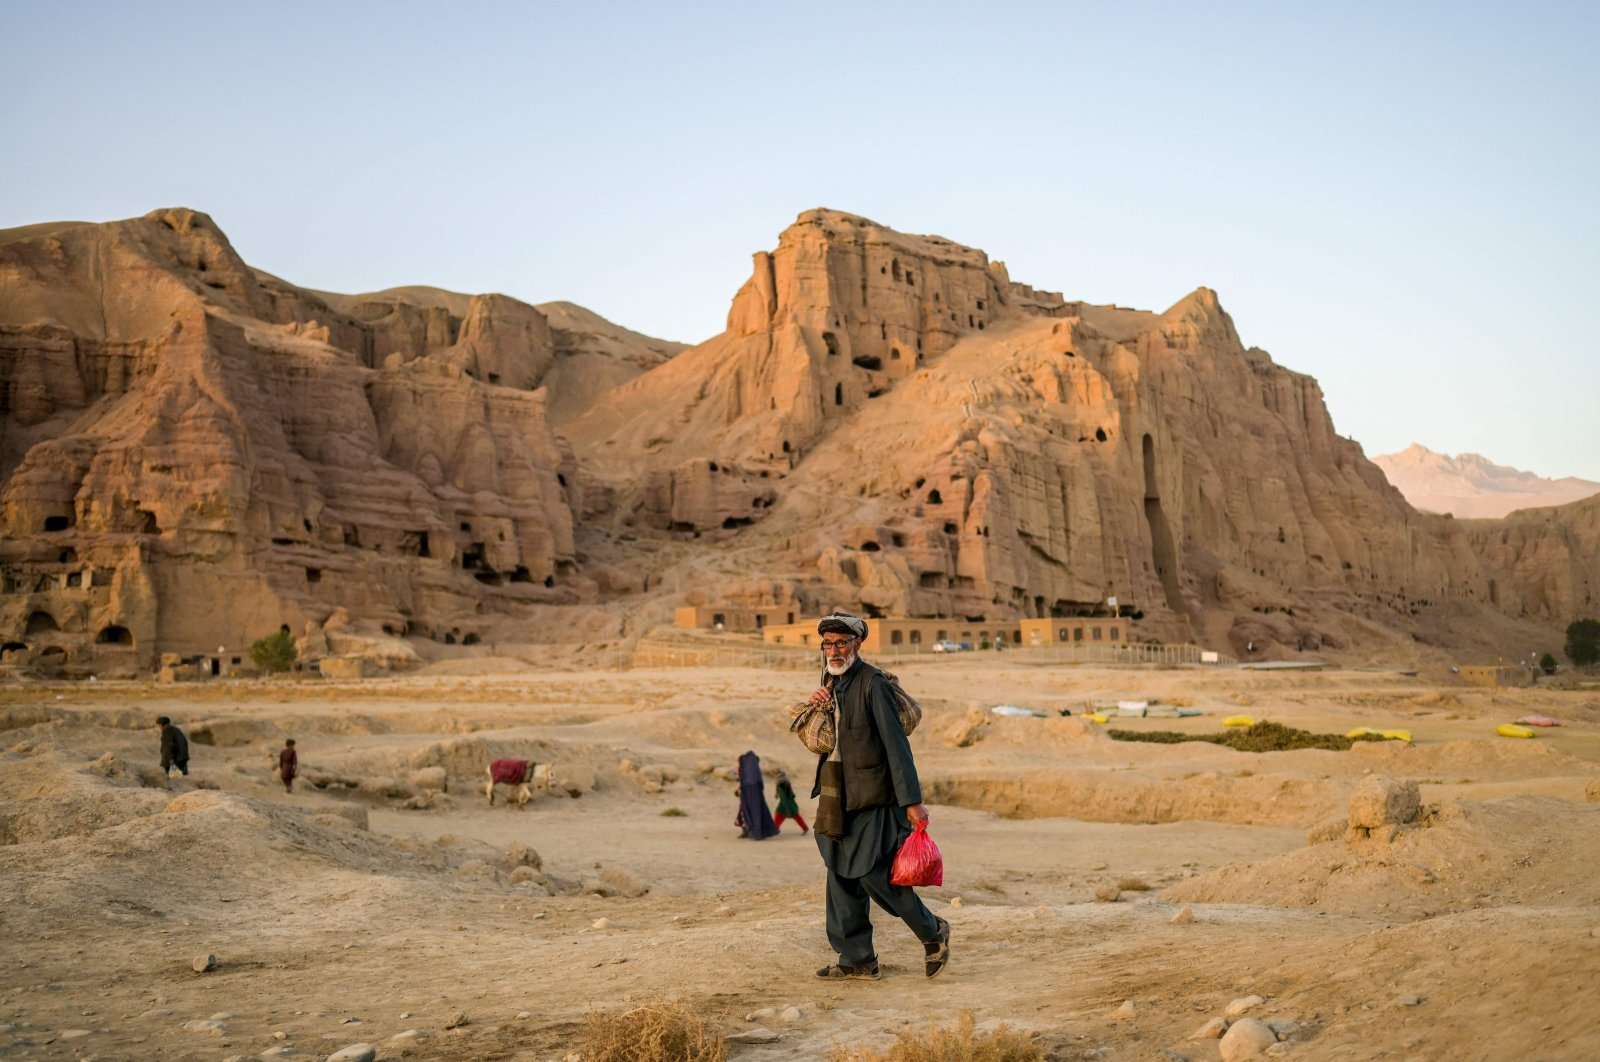 A Hazara man walks home near the cliffs pockmarked by caves where people still live as they did centuries ago in Bamiyan, Afghanistan, Oct. 3, 2021. (AFP Photo)